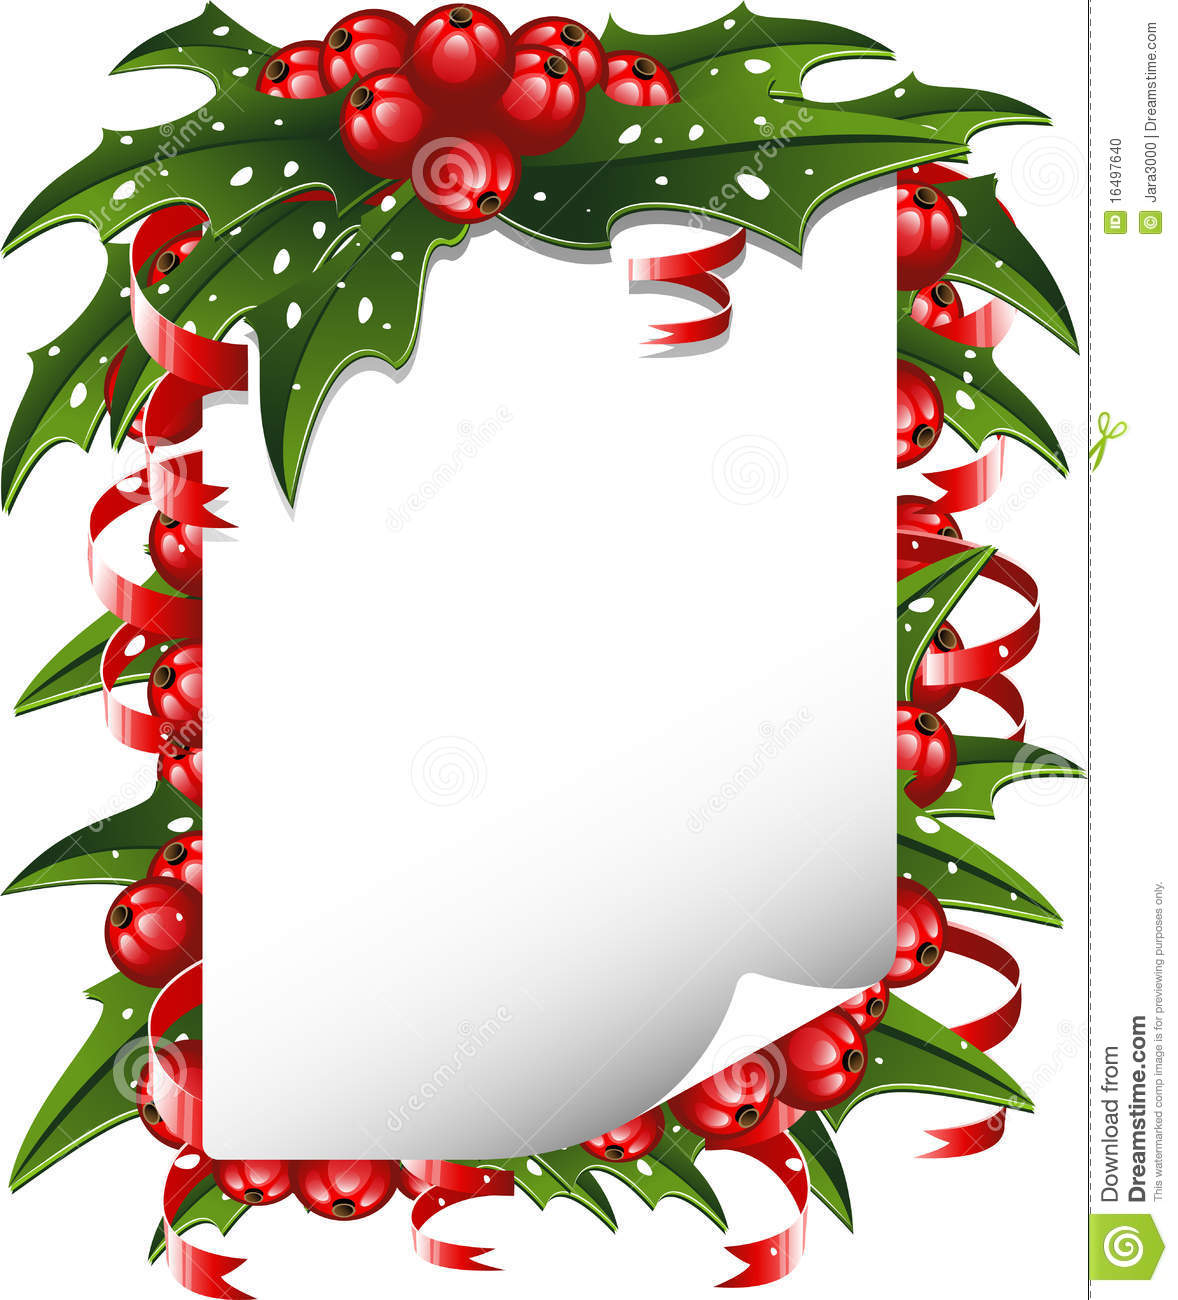 Christmas Wishes Clipart